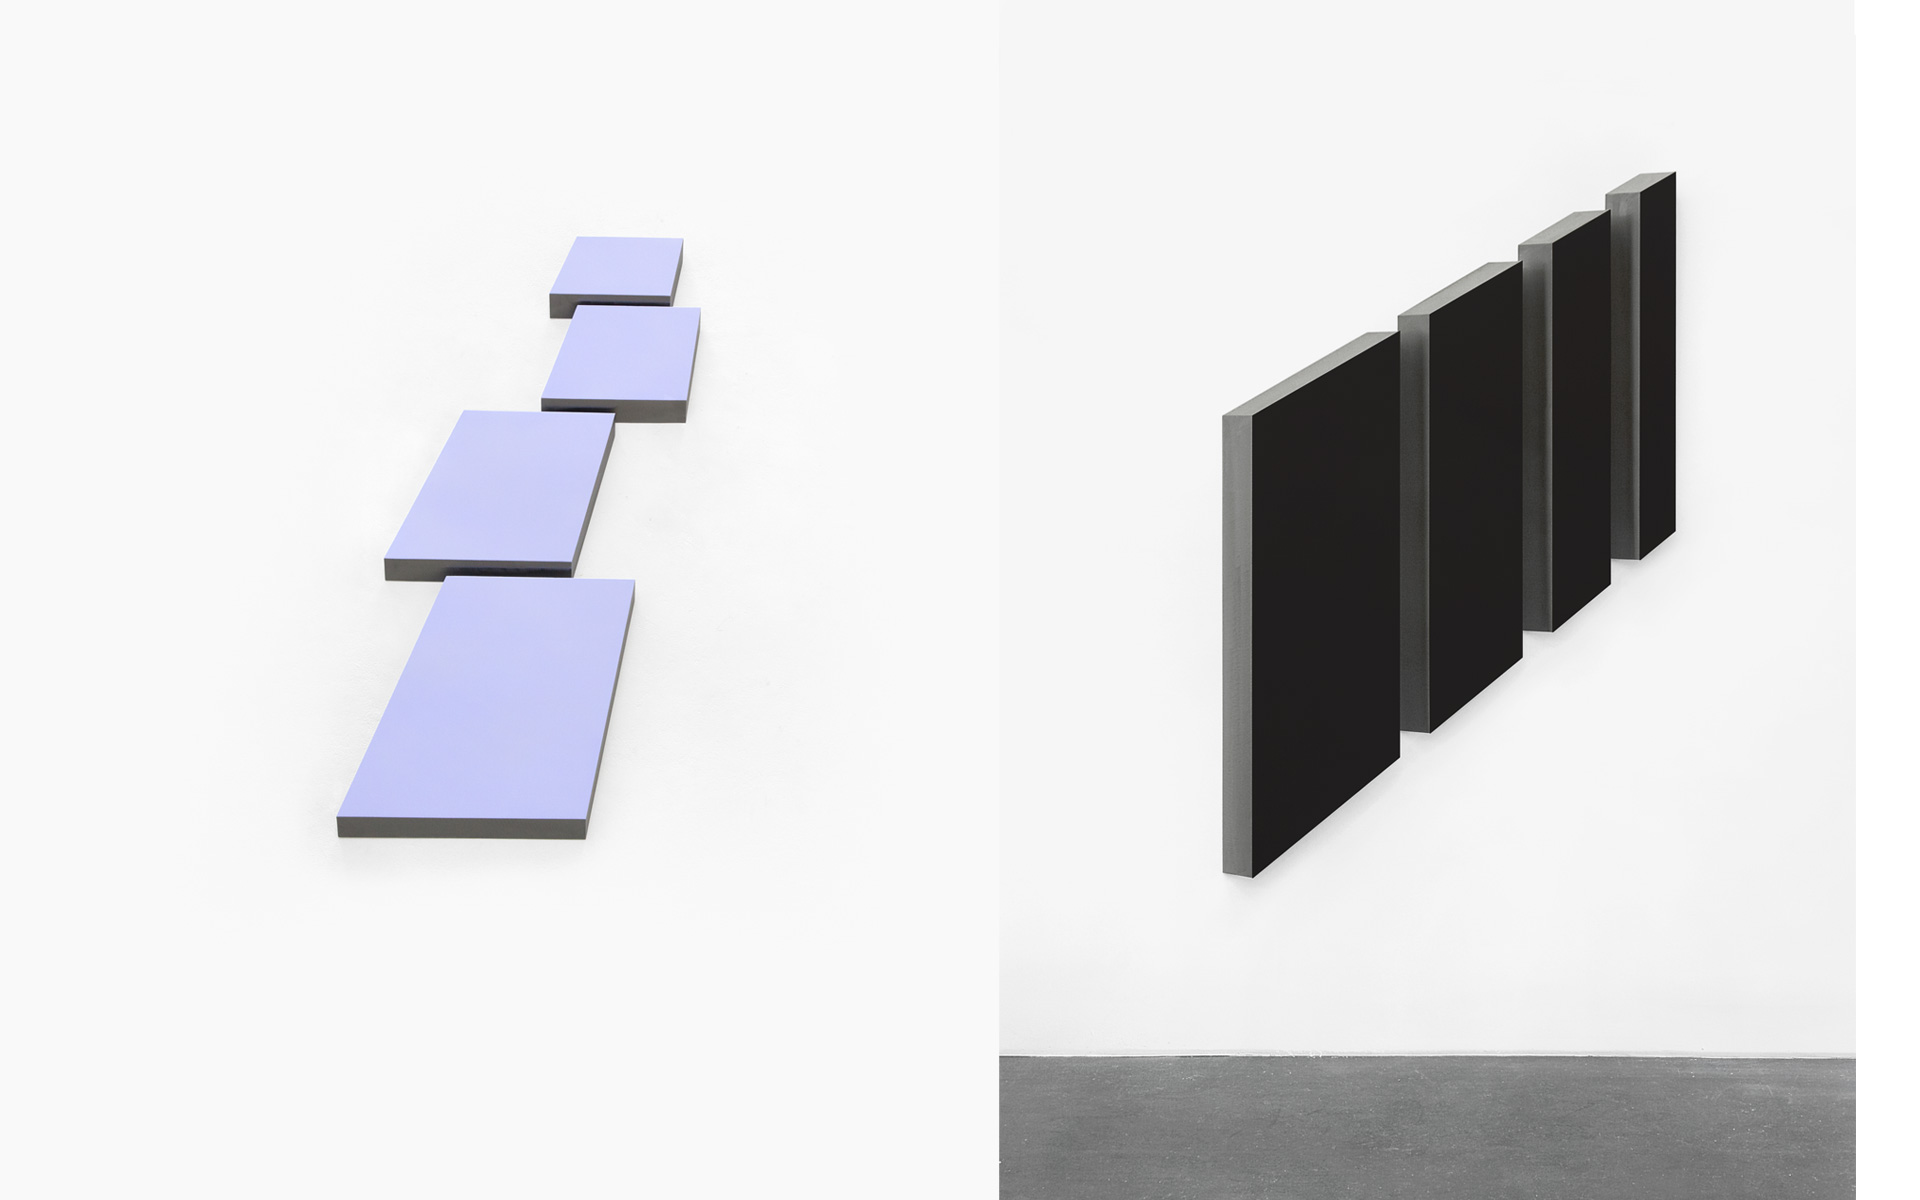 left: FLY, four parts, 2011 Acrylic on steel 66 × 112.5 × 2.8 cm / right: PORT, four parts, 2009 Acrylic on steel 194 × 125 × 8.5 cm - Photos: Christoph Valentien